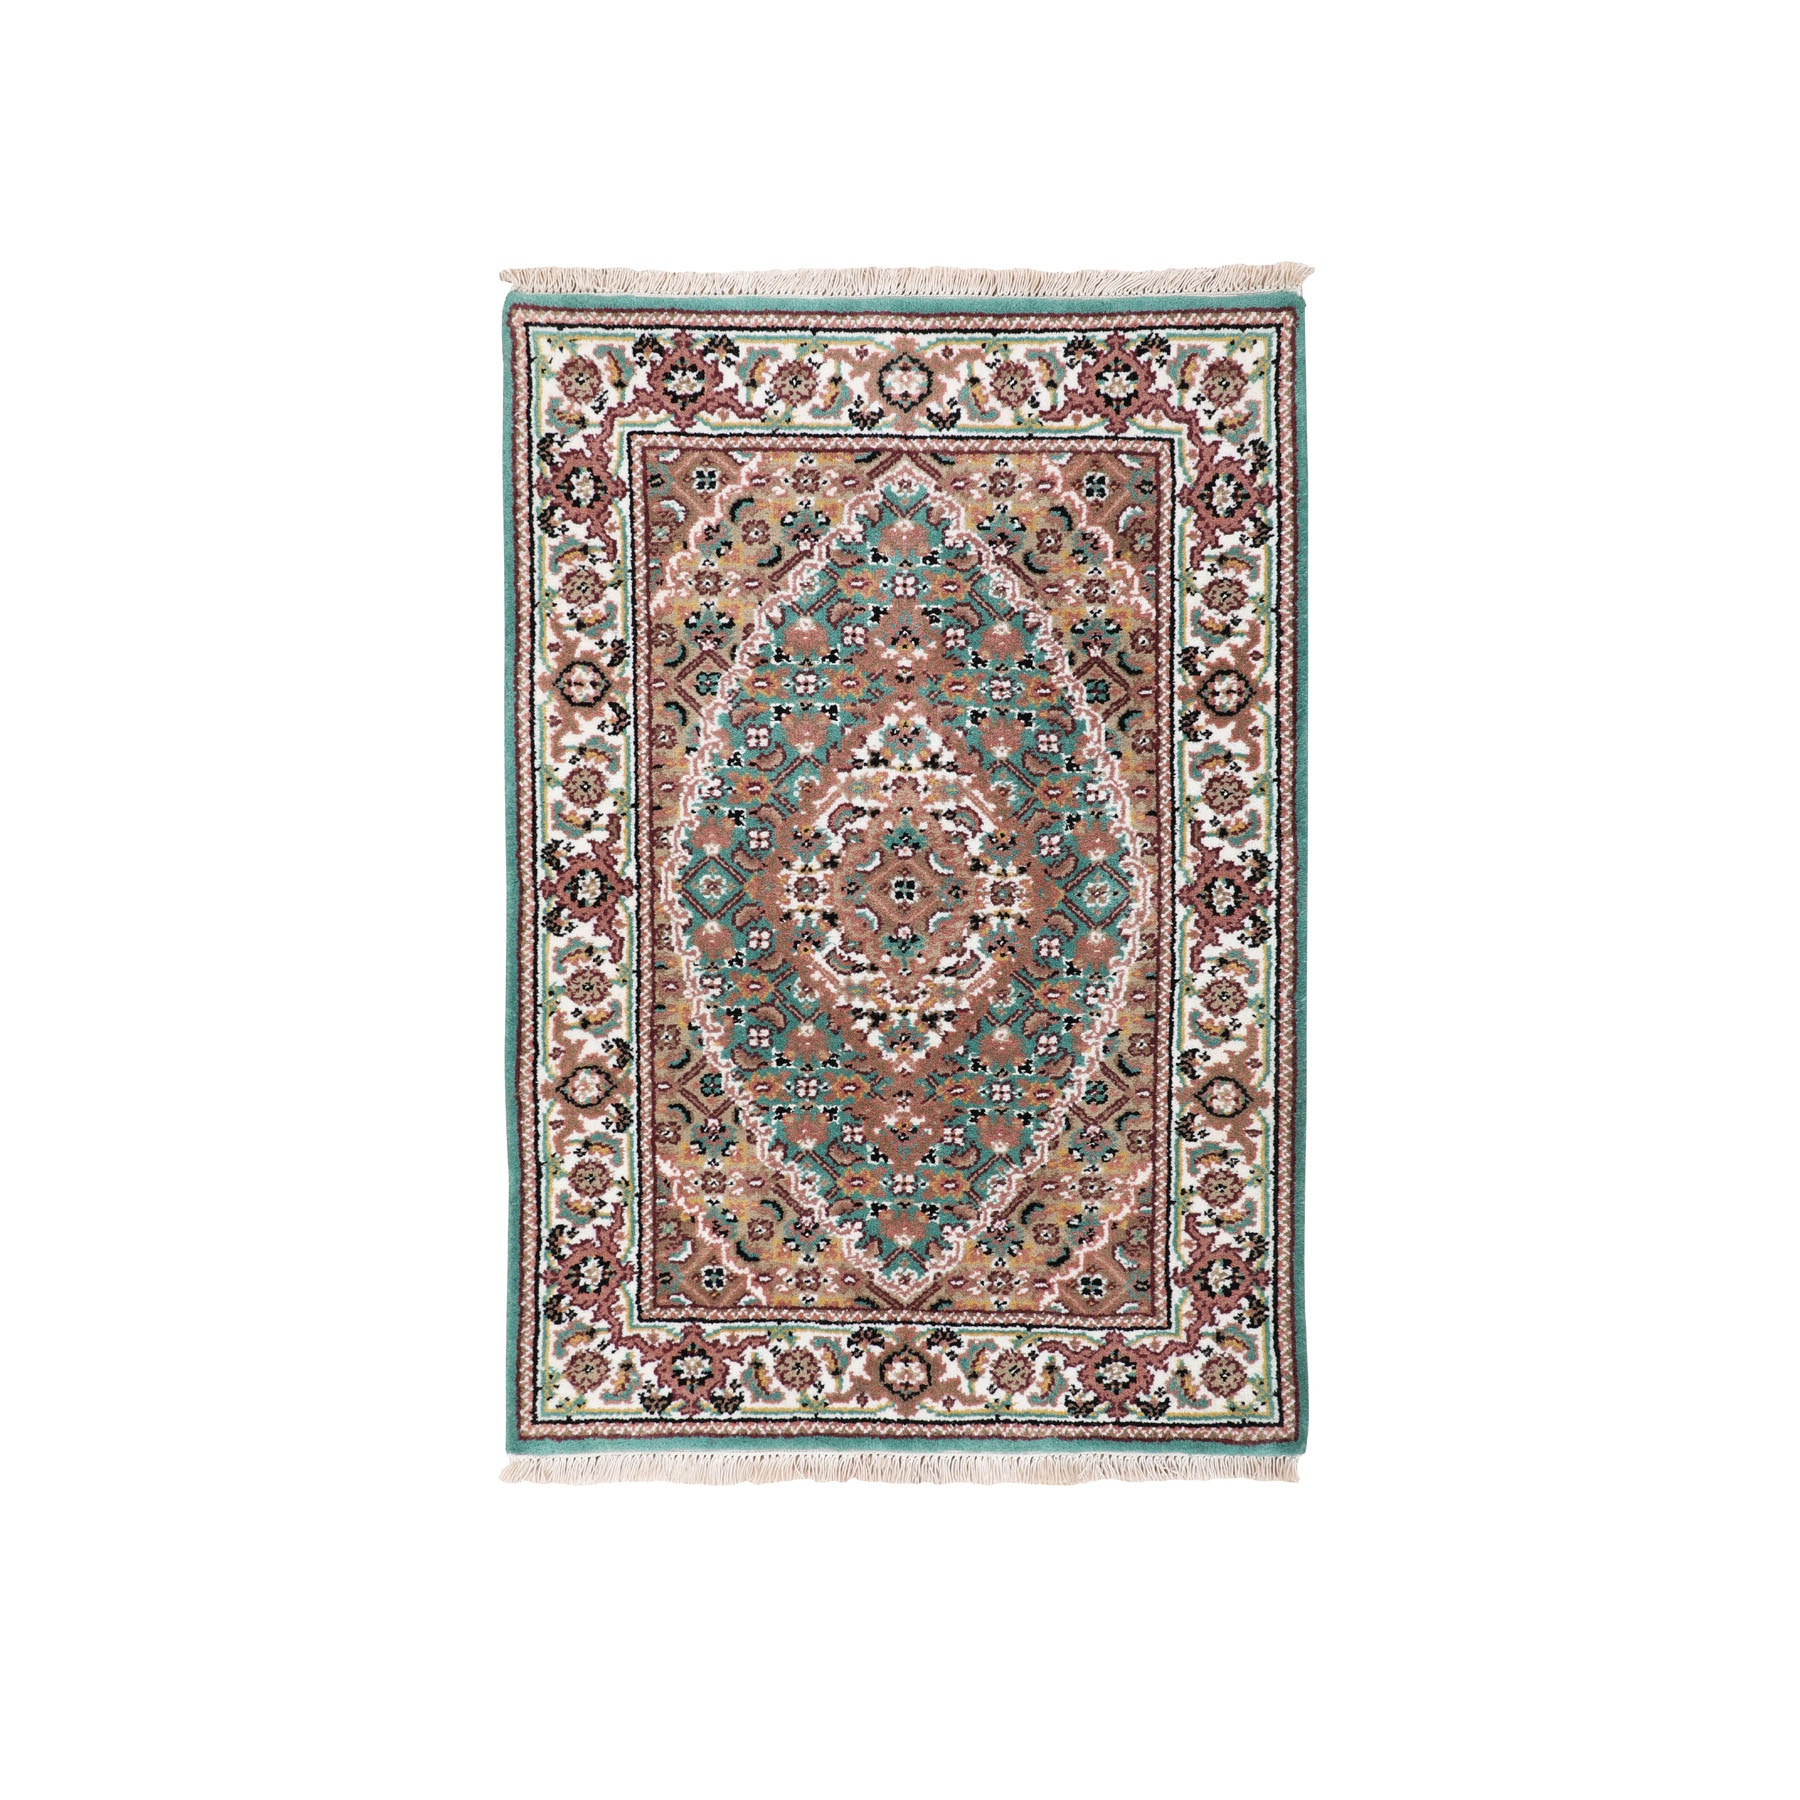 "2'1""x3' Green Tabriz Mahi Fish Design Wool And Silk Hand Woven Oriental Rug"